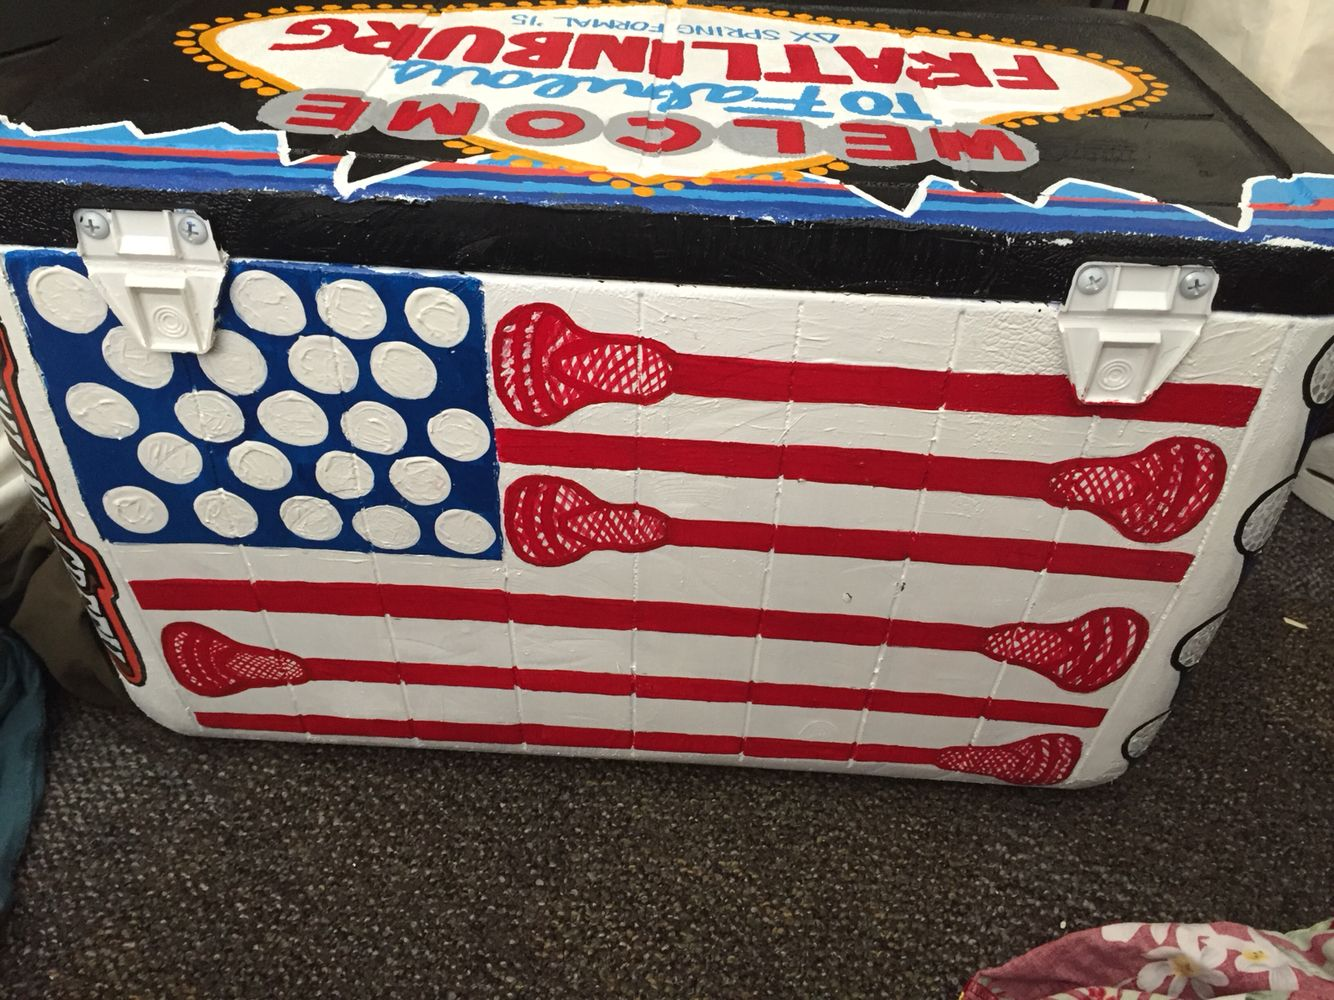 Diy Painted Cooler : Fraternity painted cooler diy craft delta chi